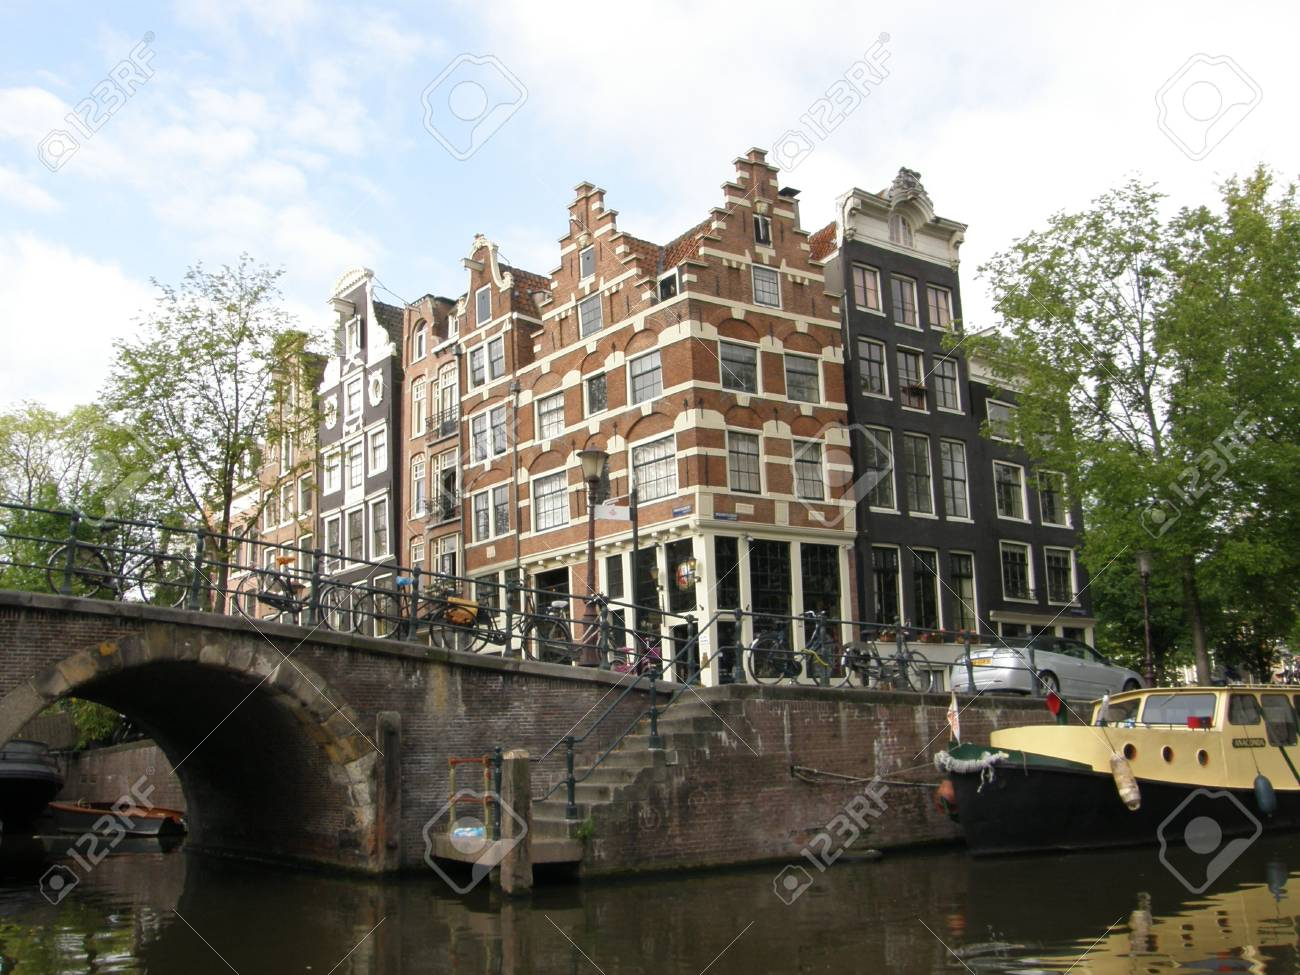 Amsterdam Canals & Houses Stock Photo - 3551470